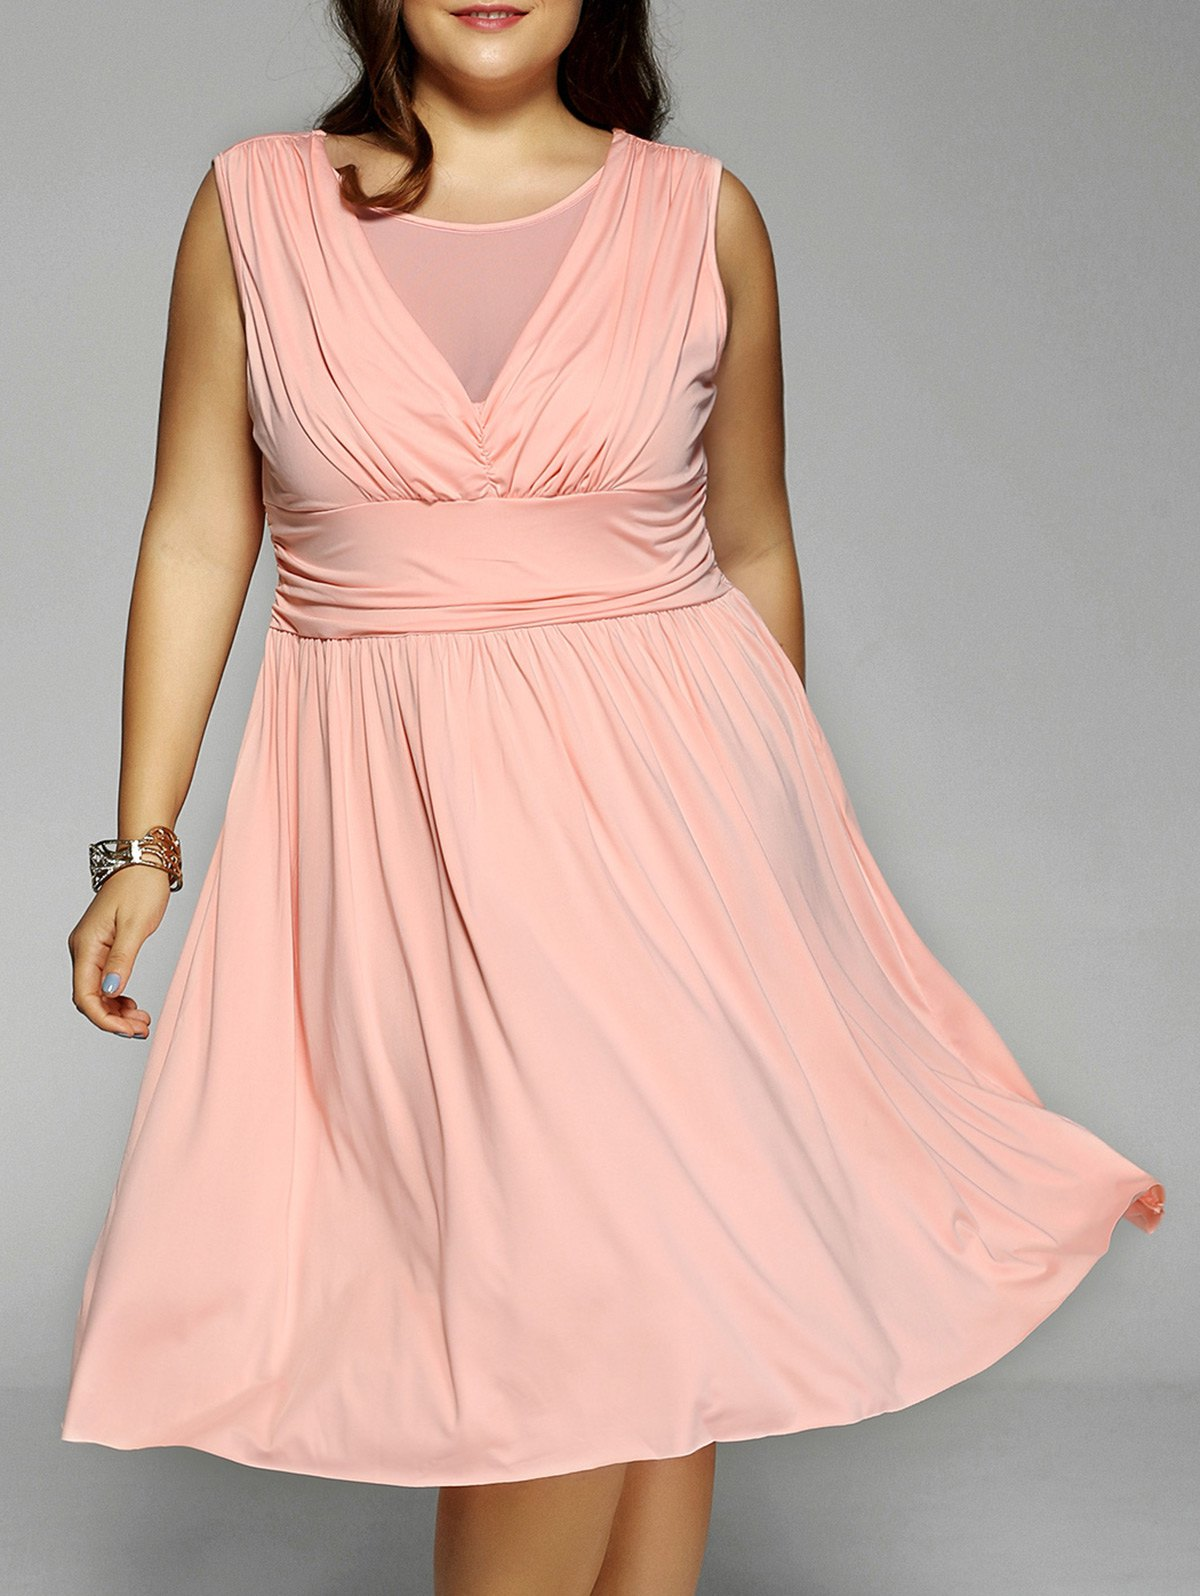 Plus Size Sleeveless Mesh-Insert Ruched Dress - PINK 3XL